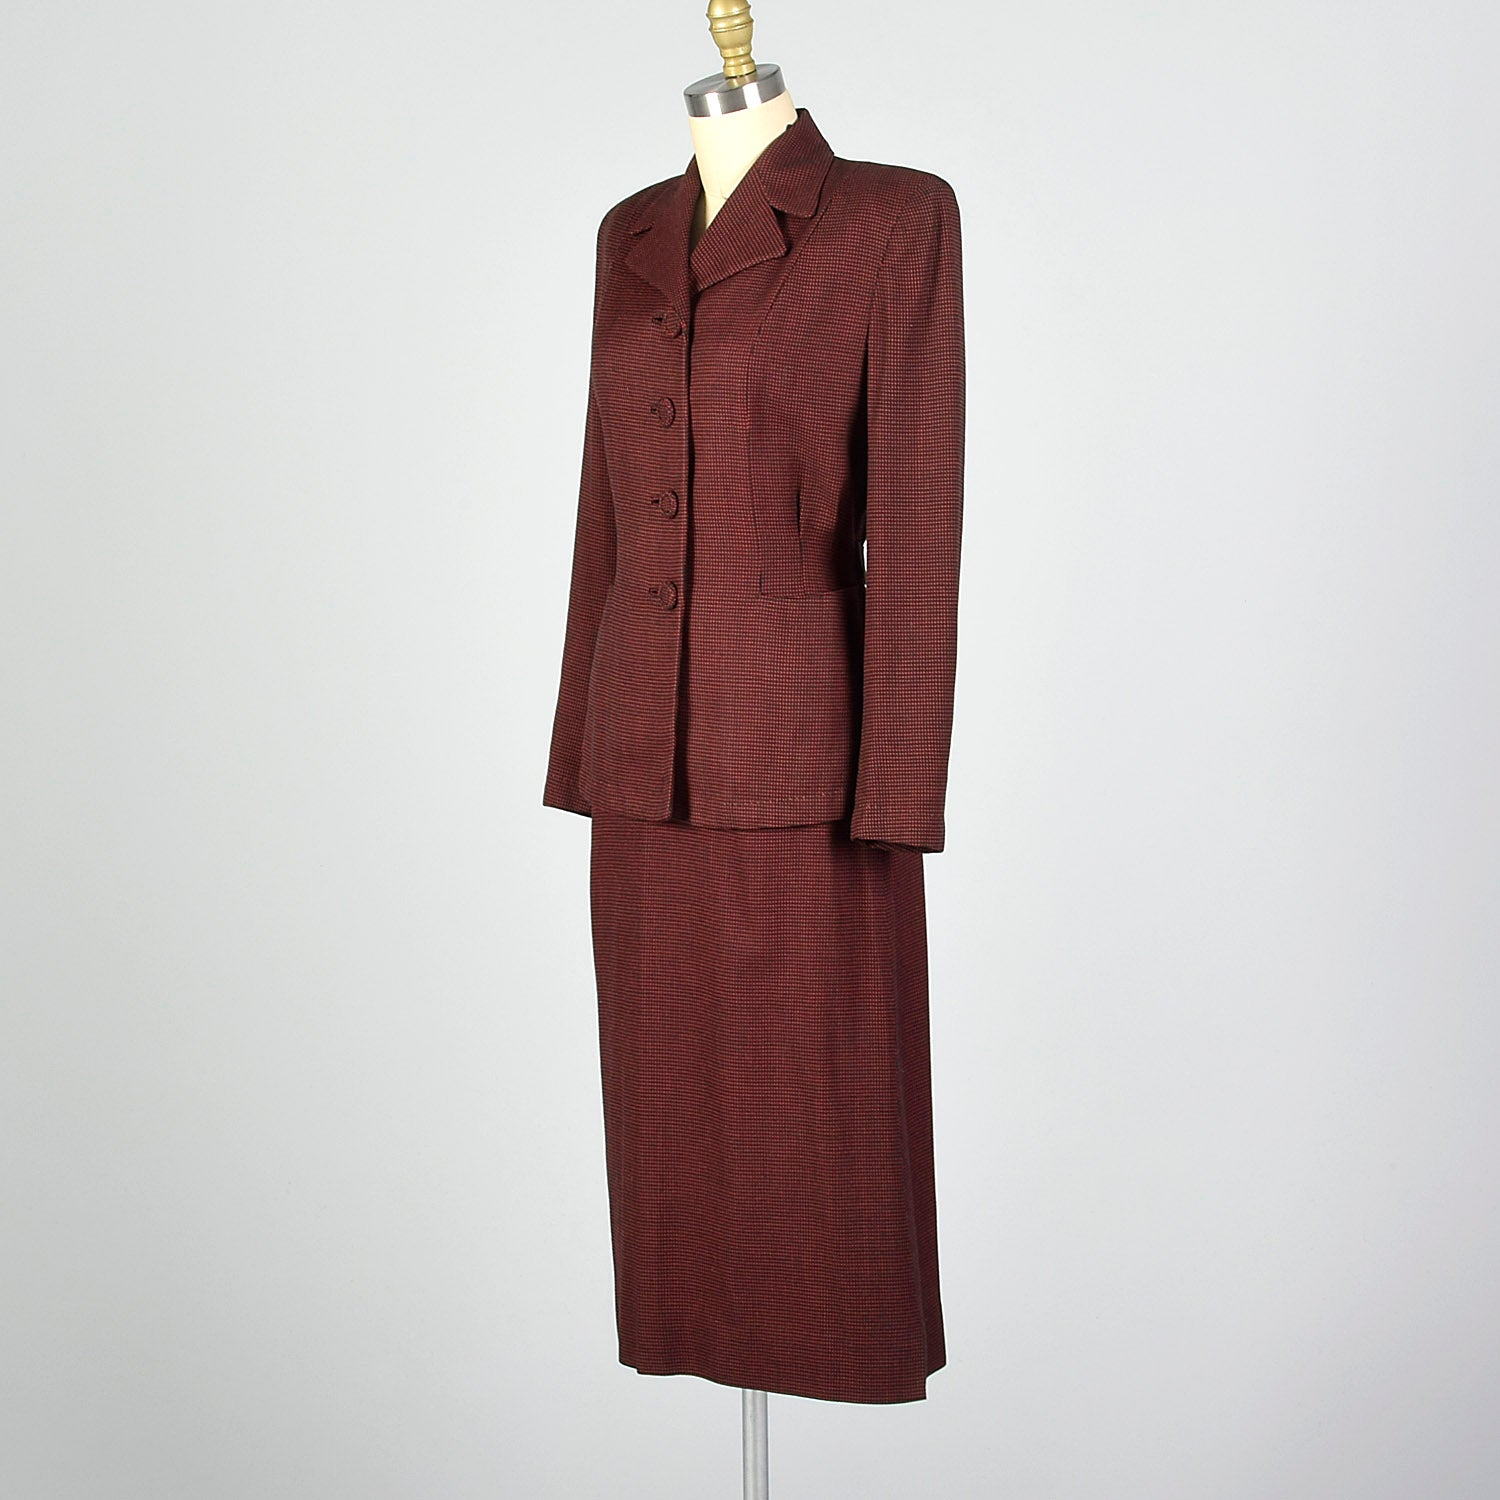 1940s Red and Black Check Skirt Suit